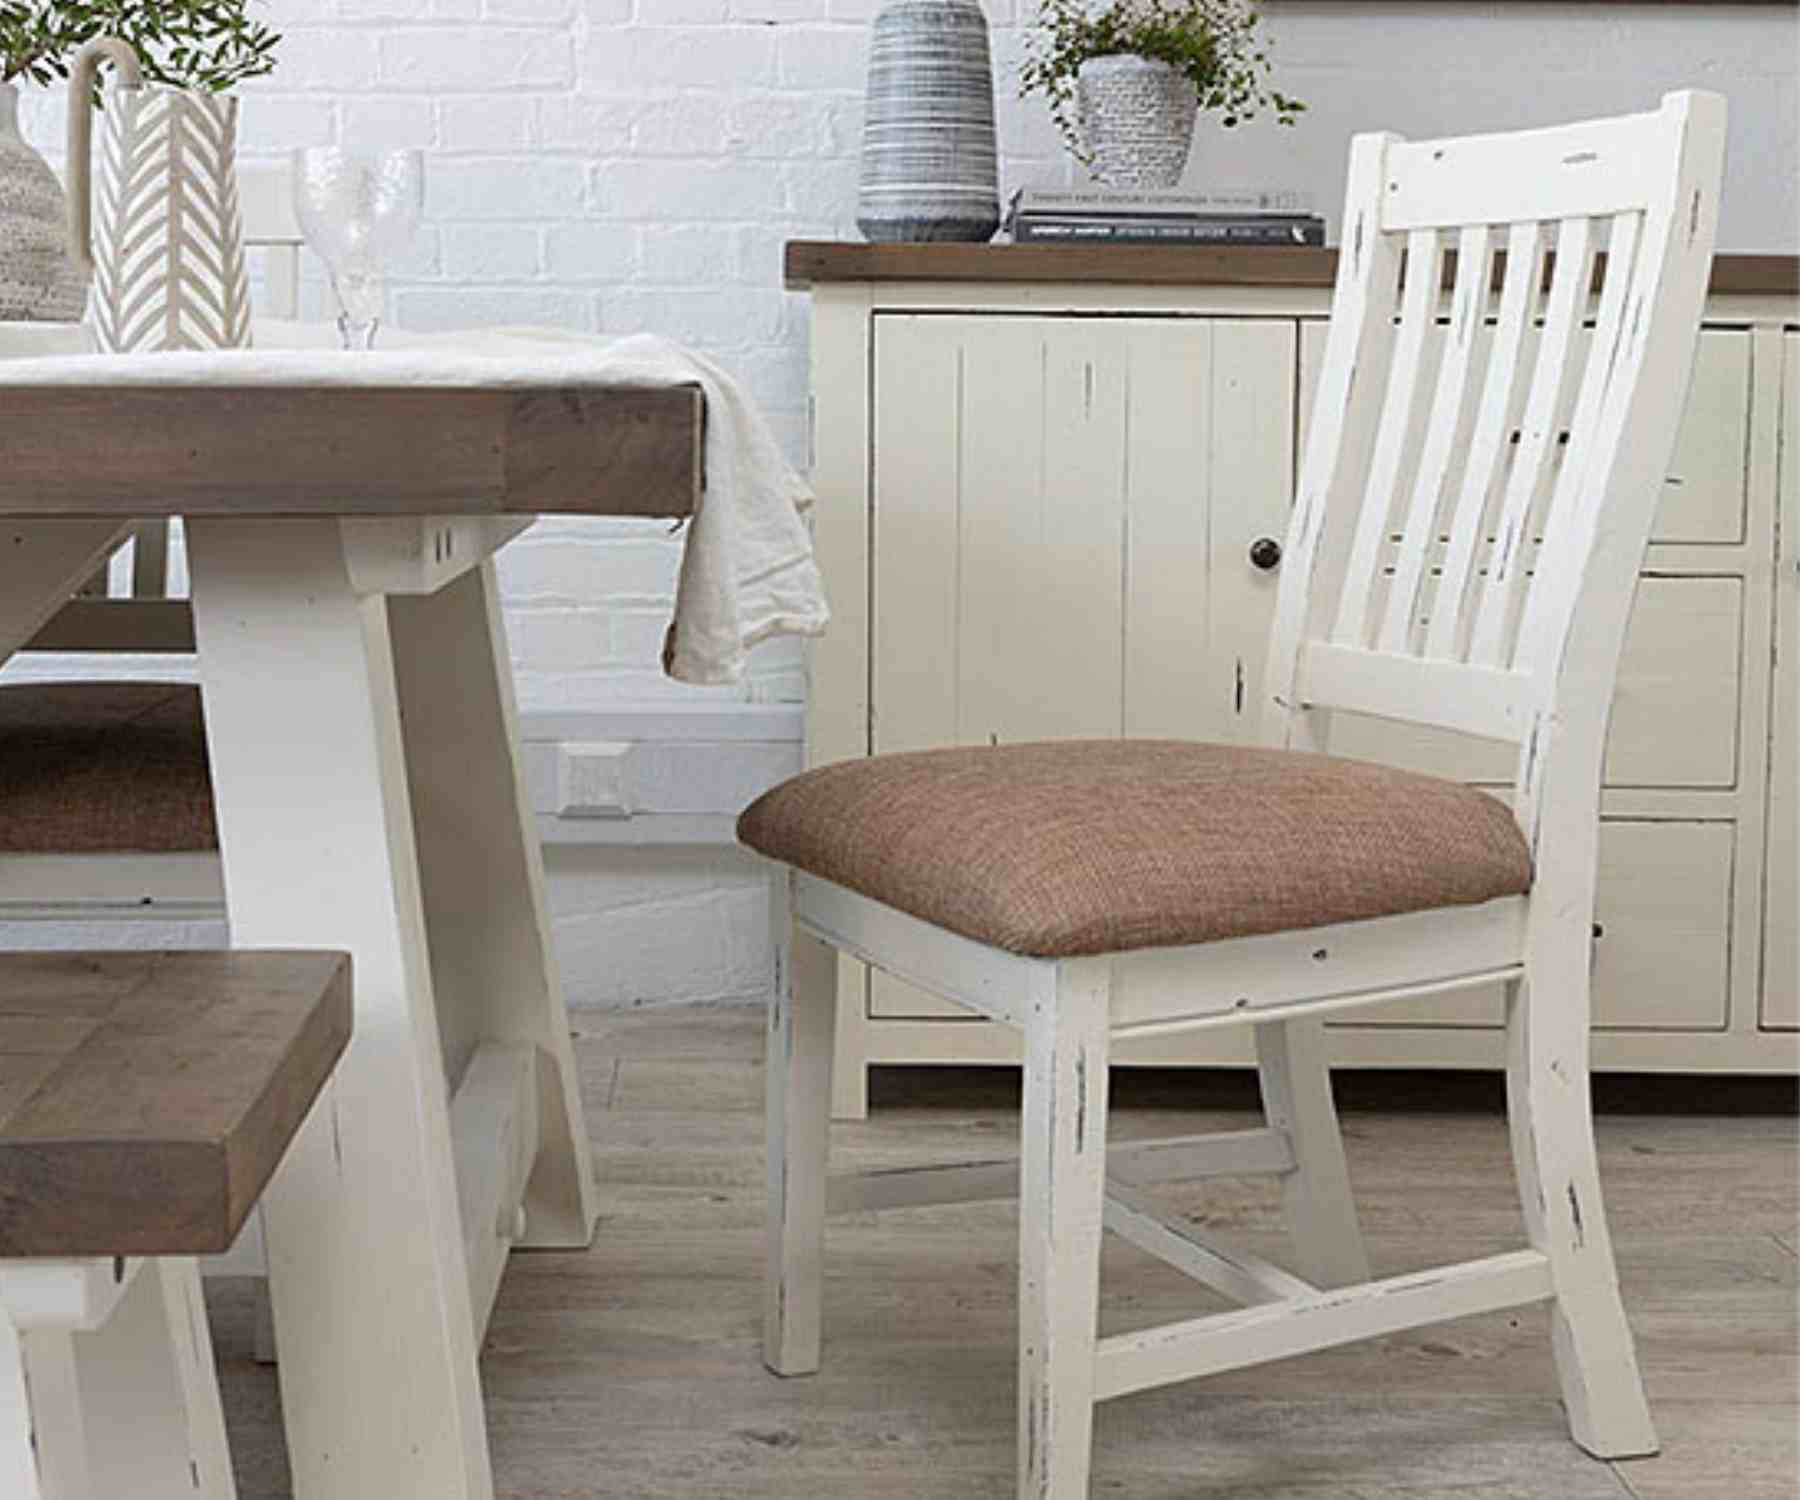 White wooden dining chair with beige padded seat next to white dining table